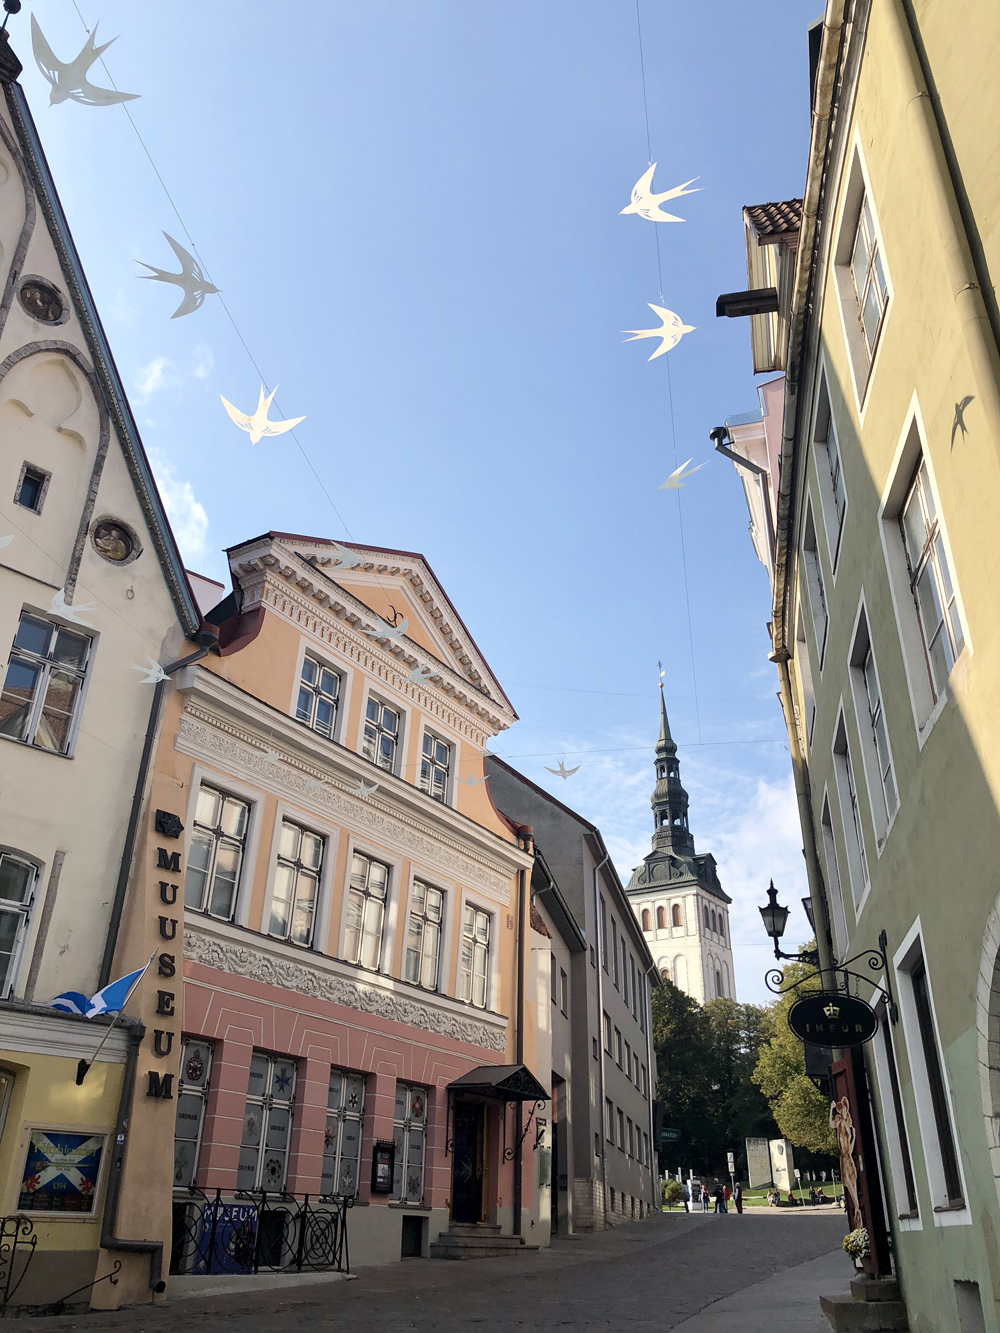 Things to Do in Tallin, Things to Do Tallin Estonia, what to do in Tallin, top things to do in Tallin